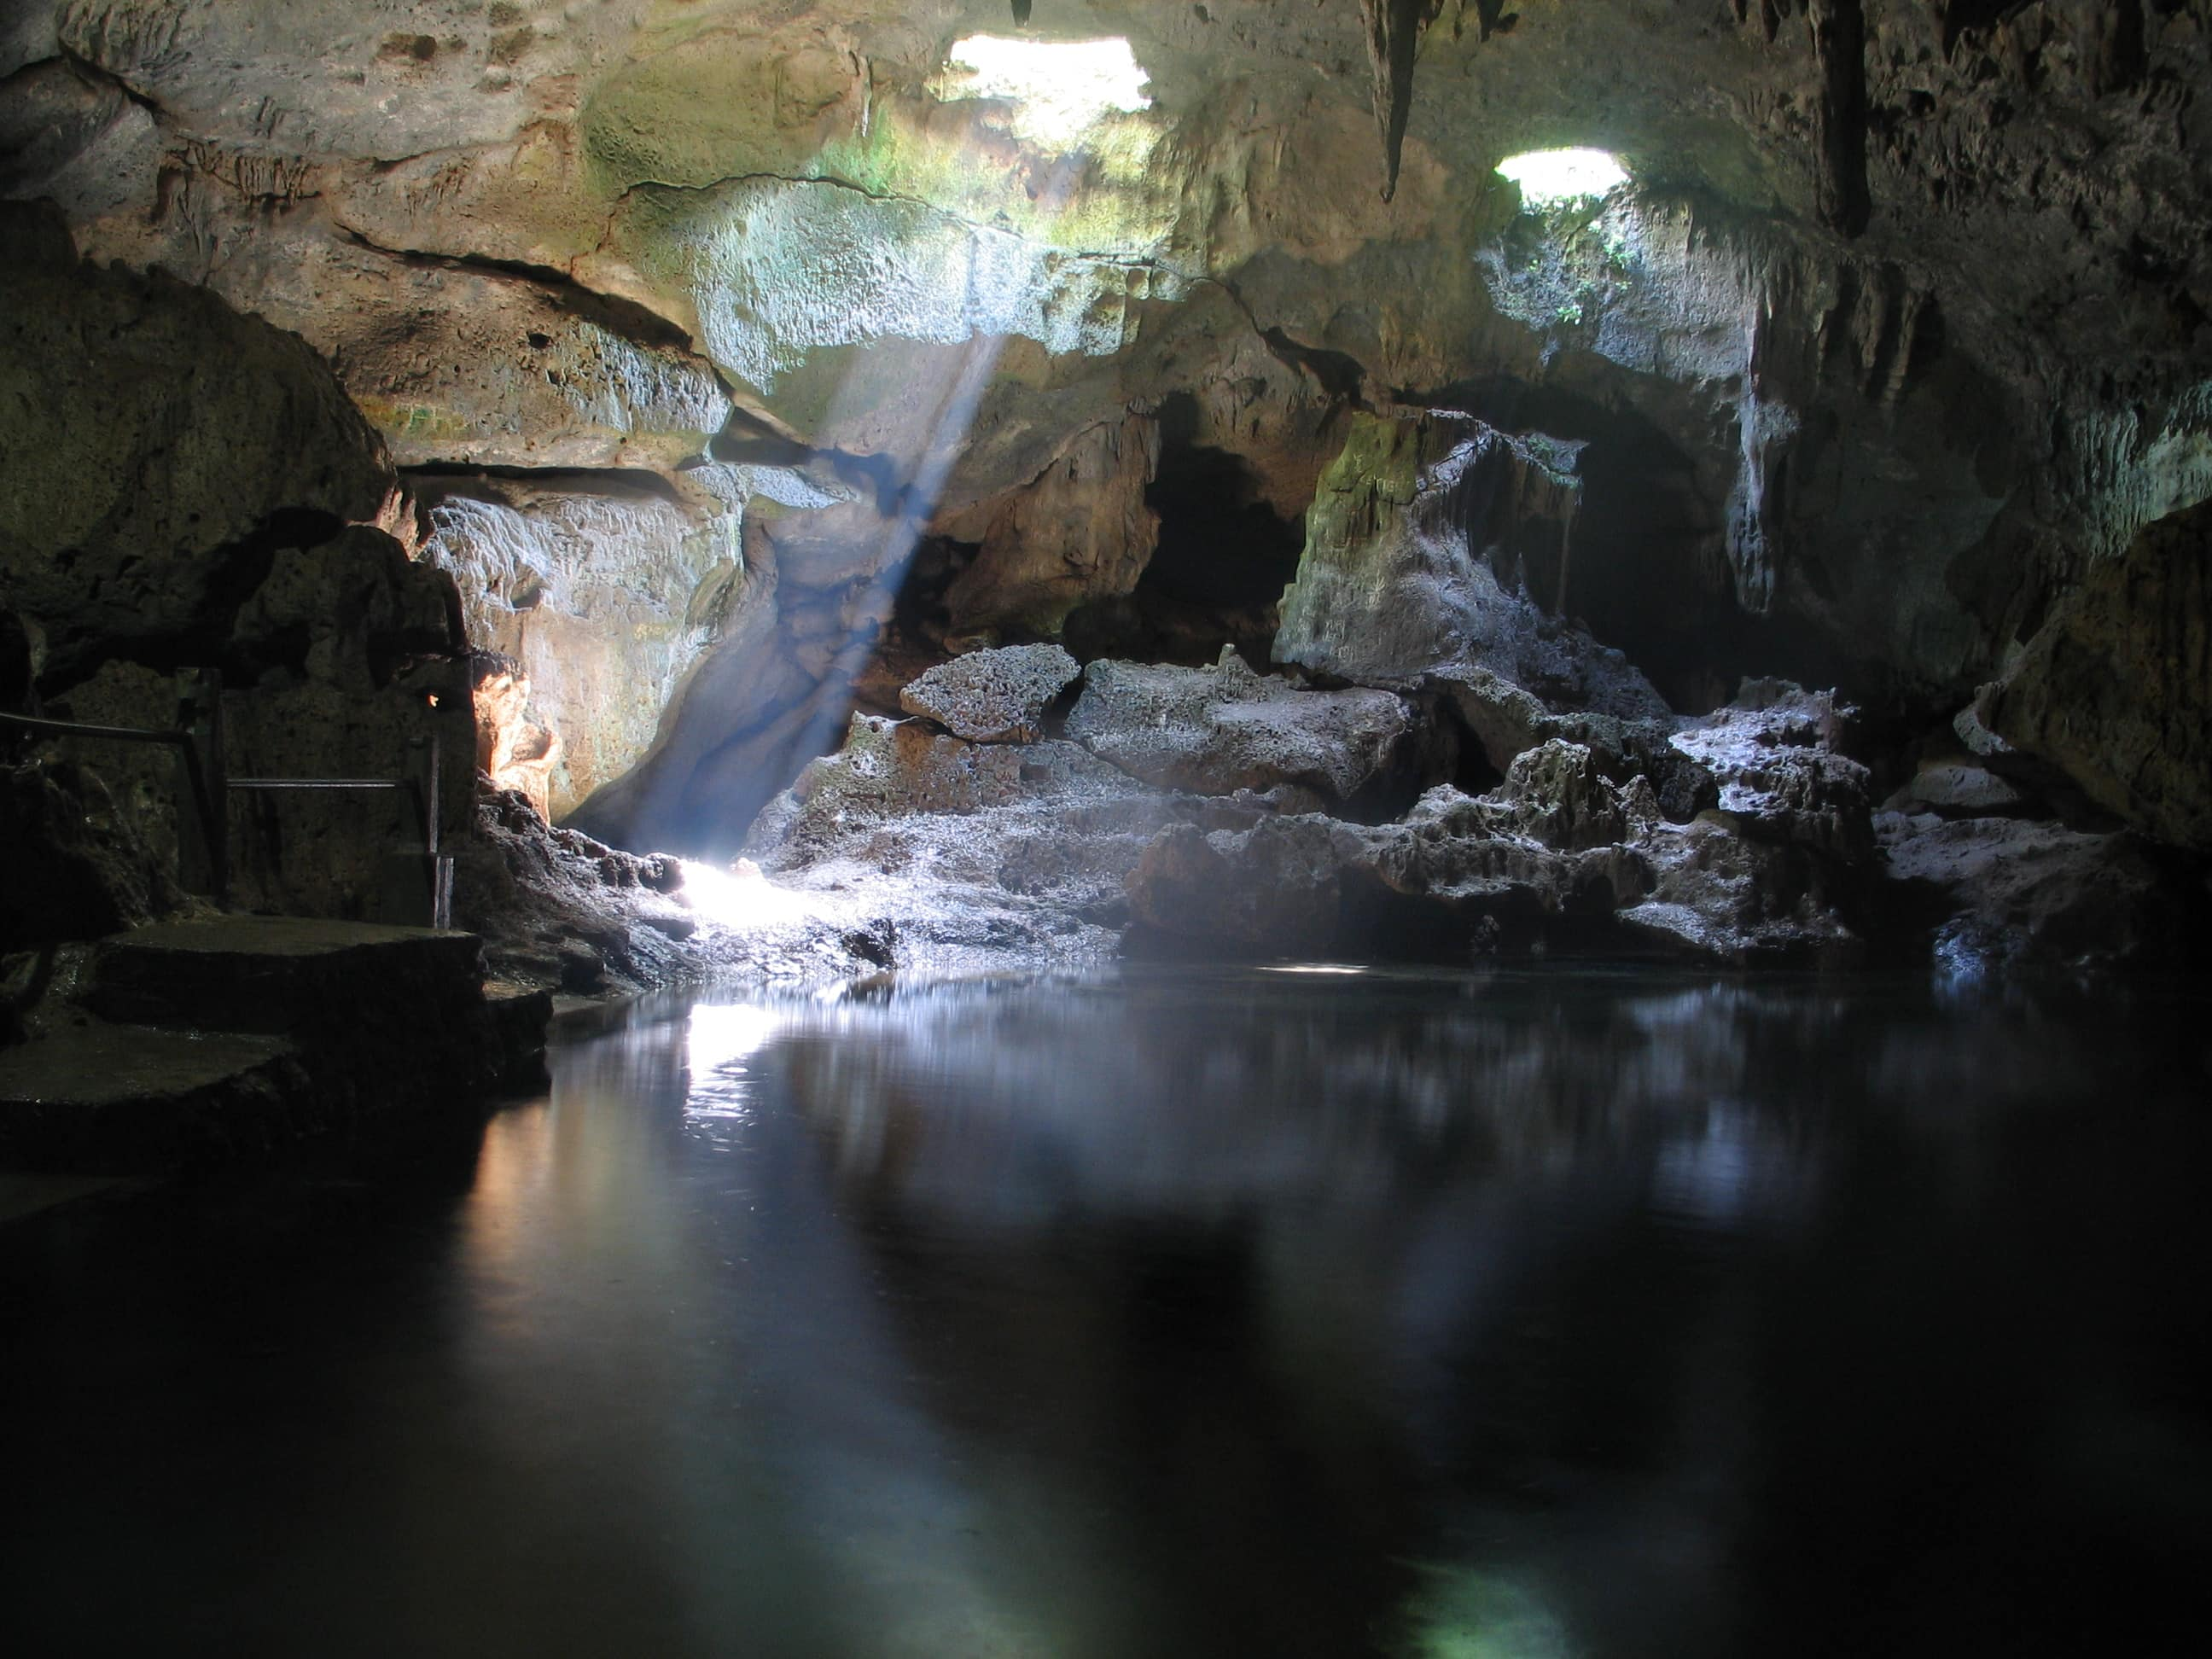 Places to visit in Bohol, Hinagdanan Cave